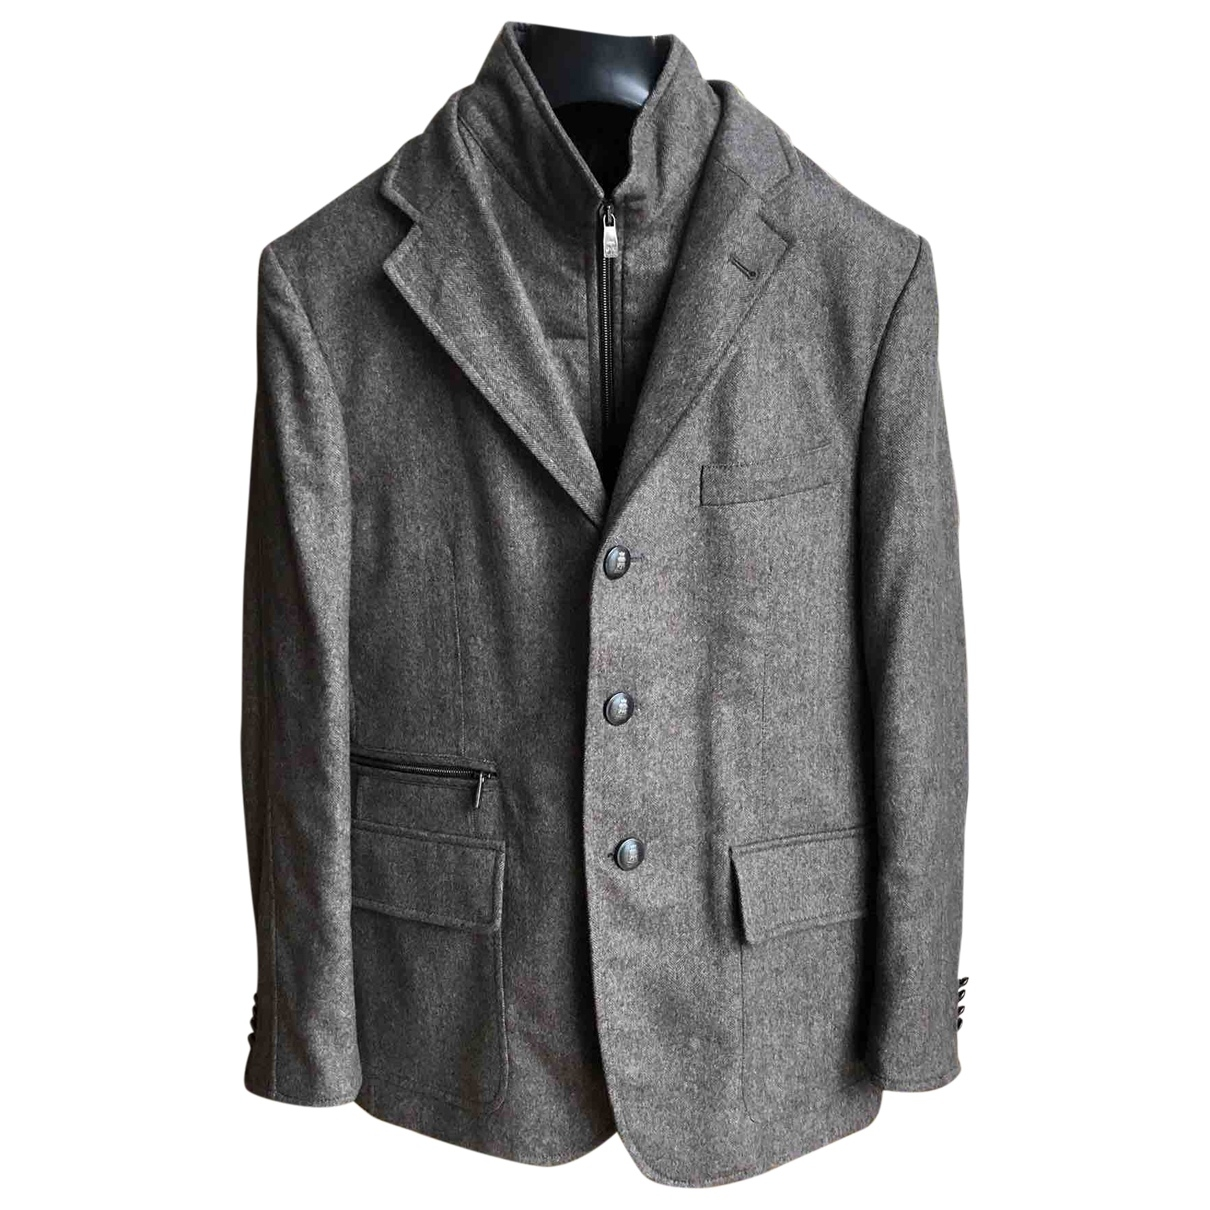 Corneliani \N Brown Wool jacket  for Men M International